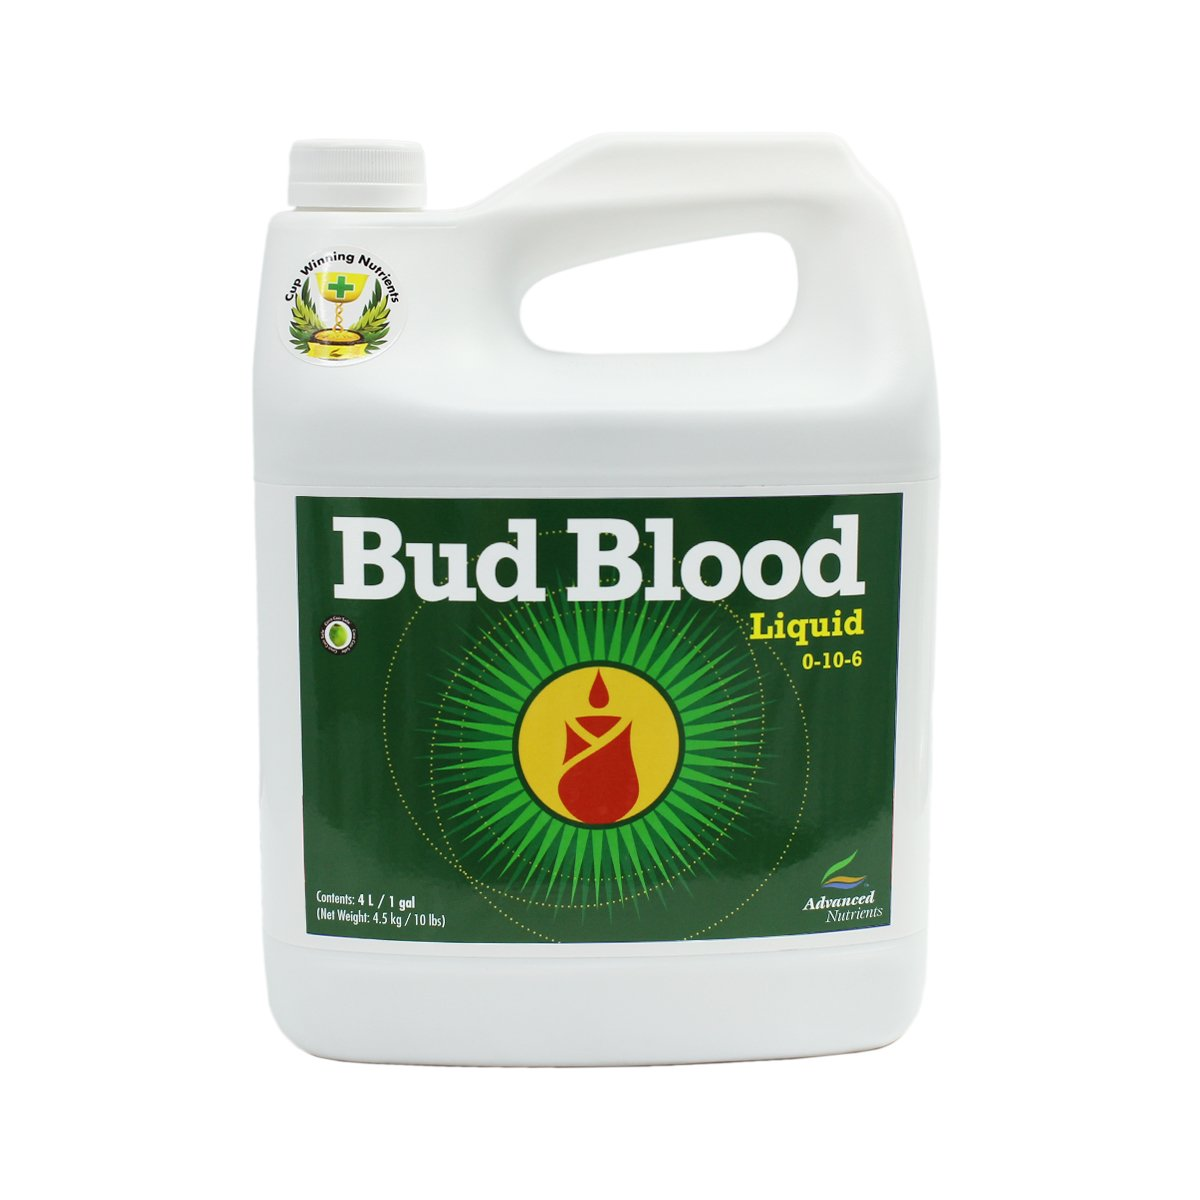 Advanced Nutrients Bud Blood Soil Amendments, 4 L by Advanced Nutrients